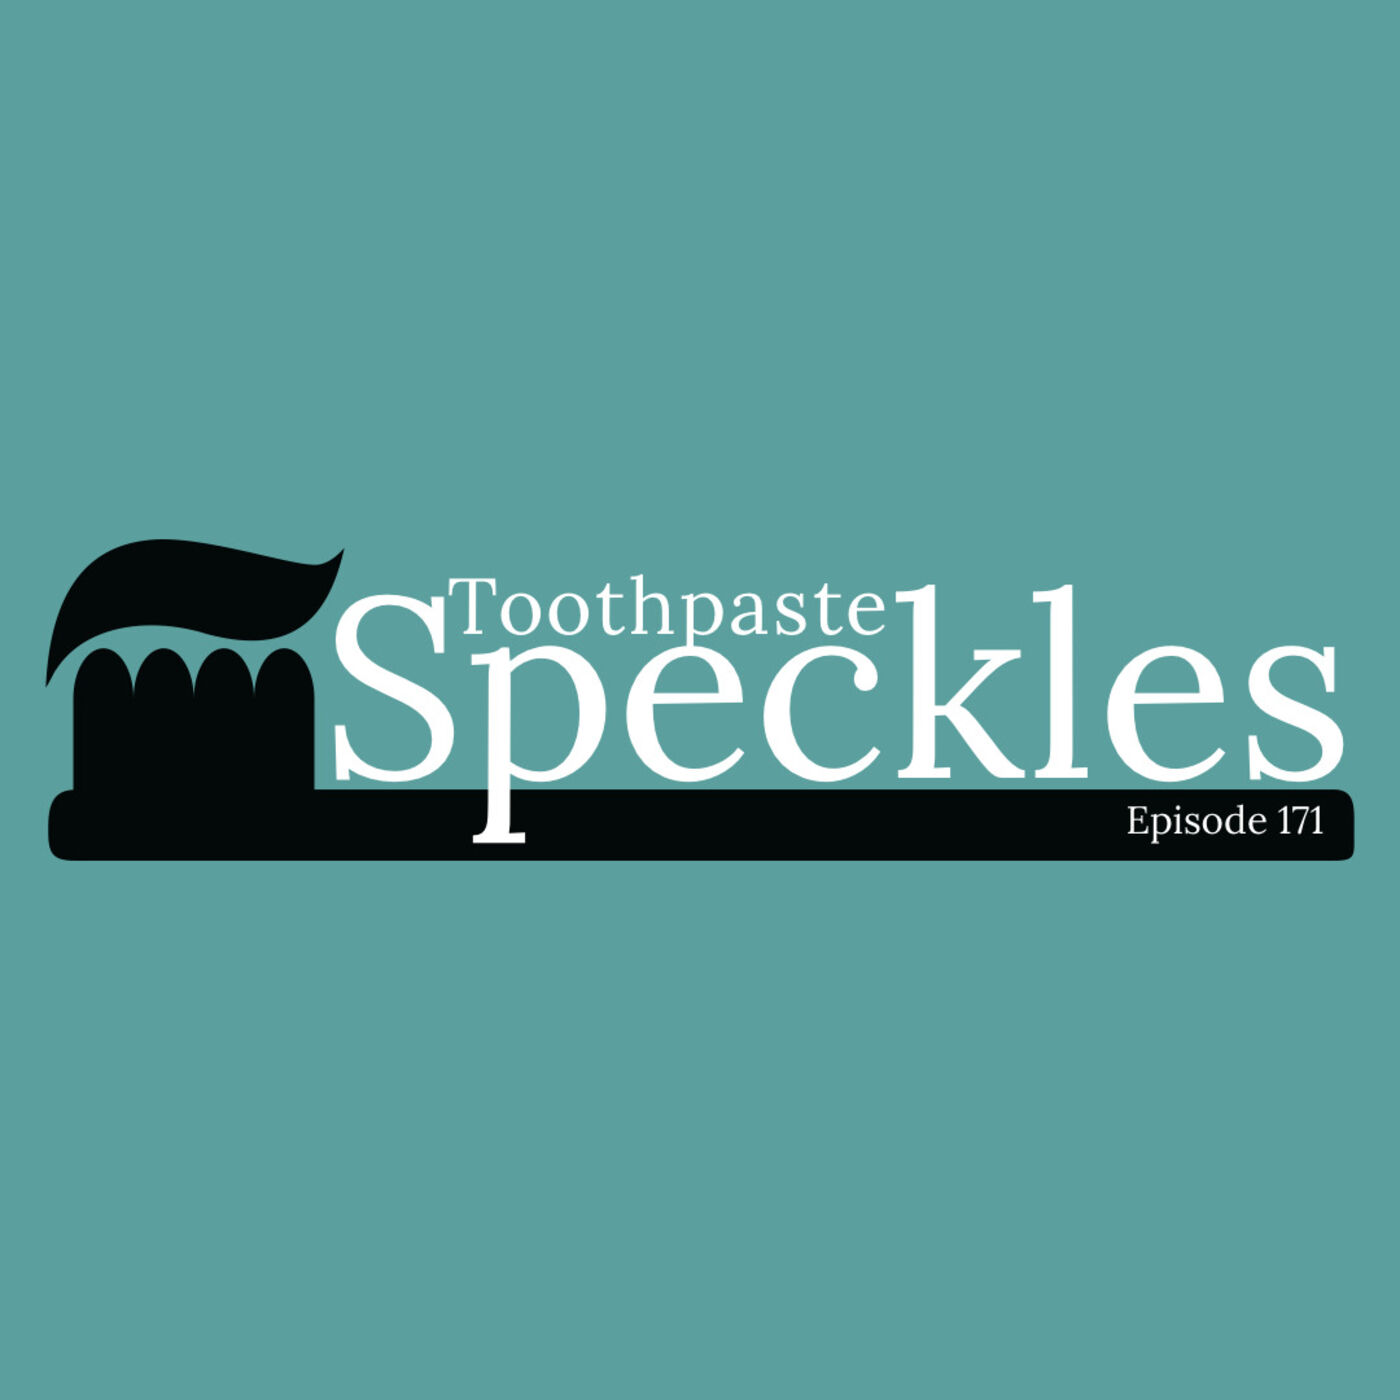 Episode 171: Toothpaste Speckles (for real this time)